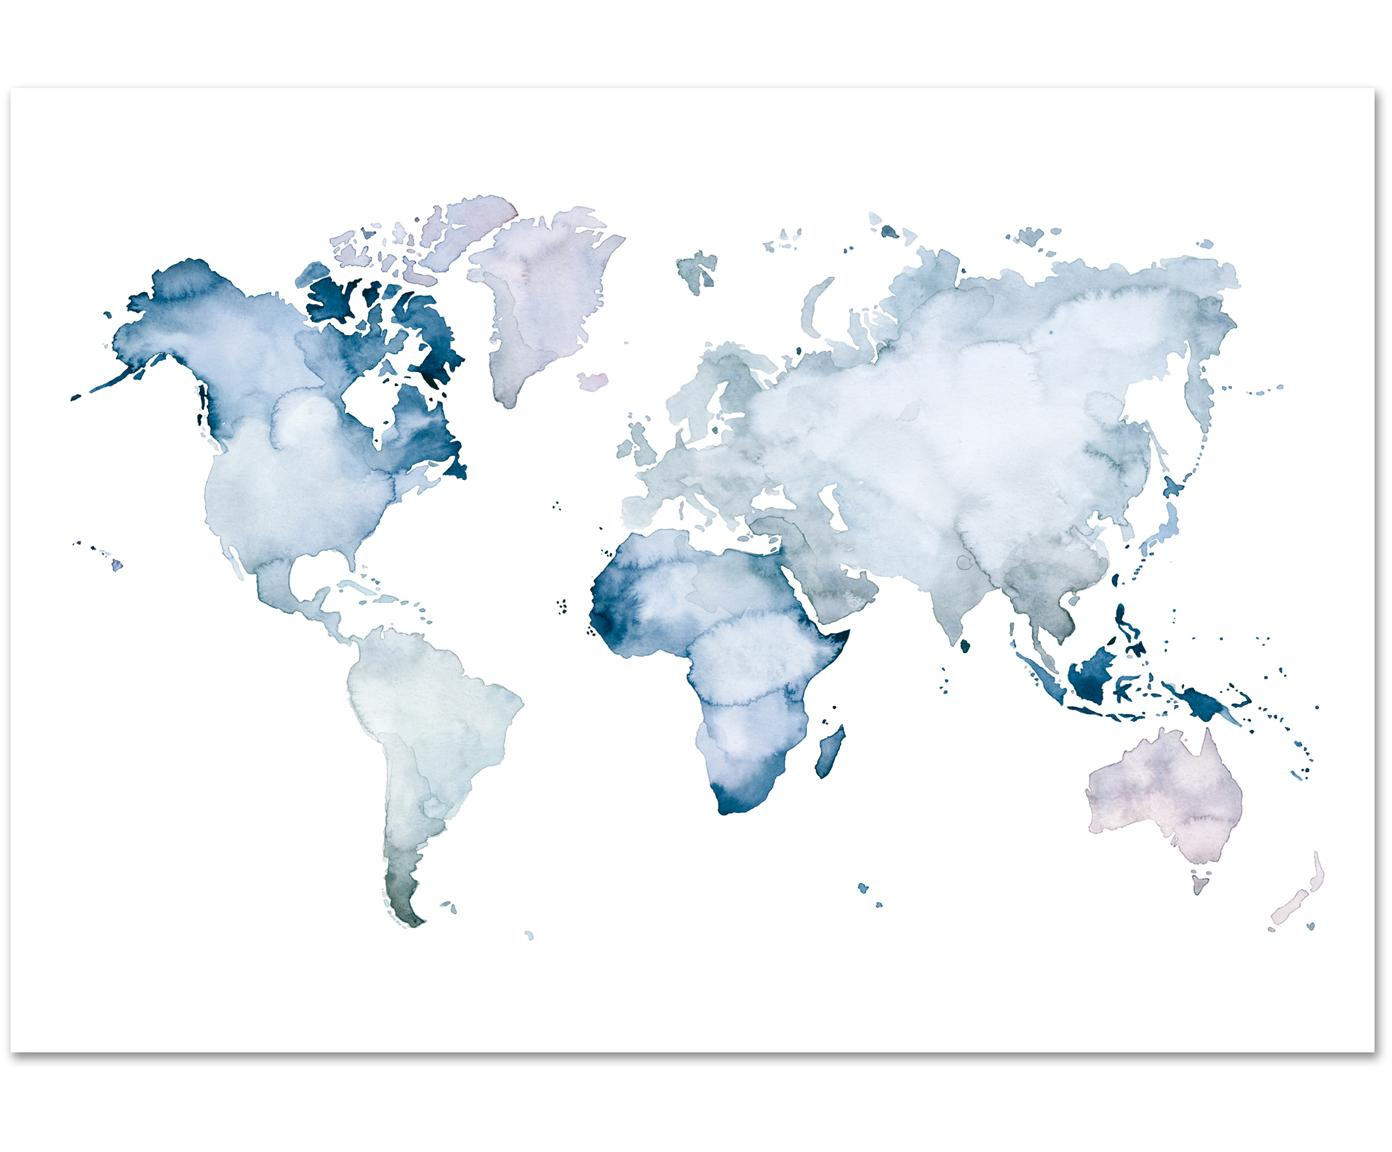 Poster World Map, Stampa digitale su carta, 200 g/m², Blu, bianco, Larg. 30 x Alt. 21 cm